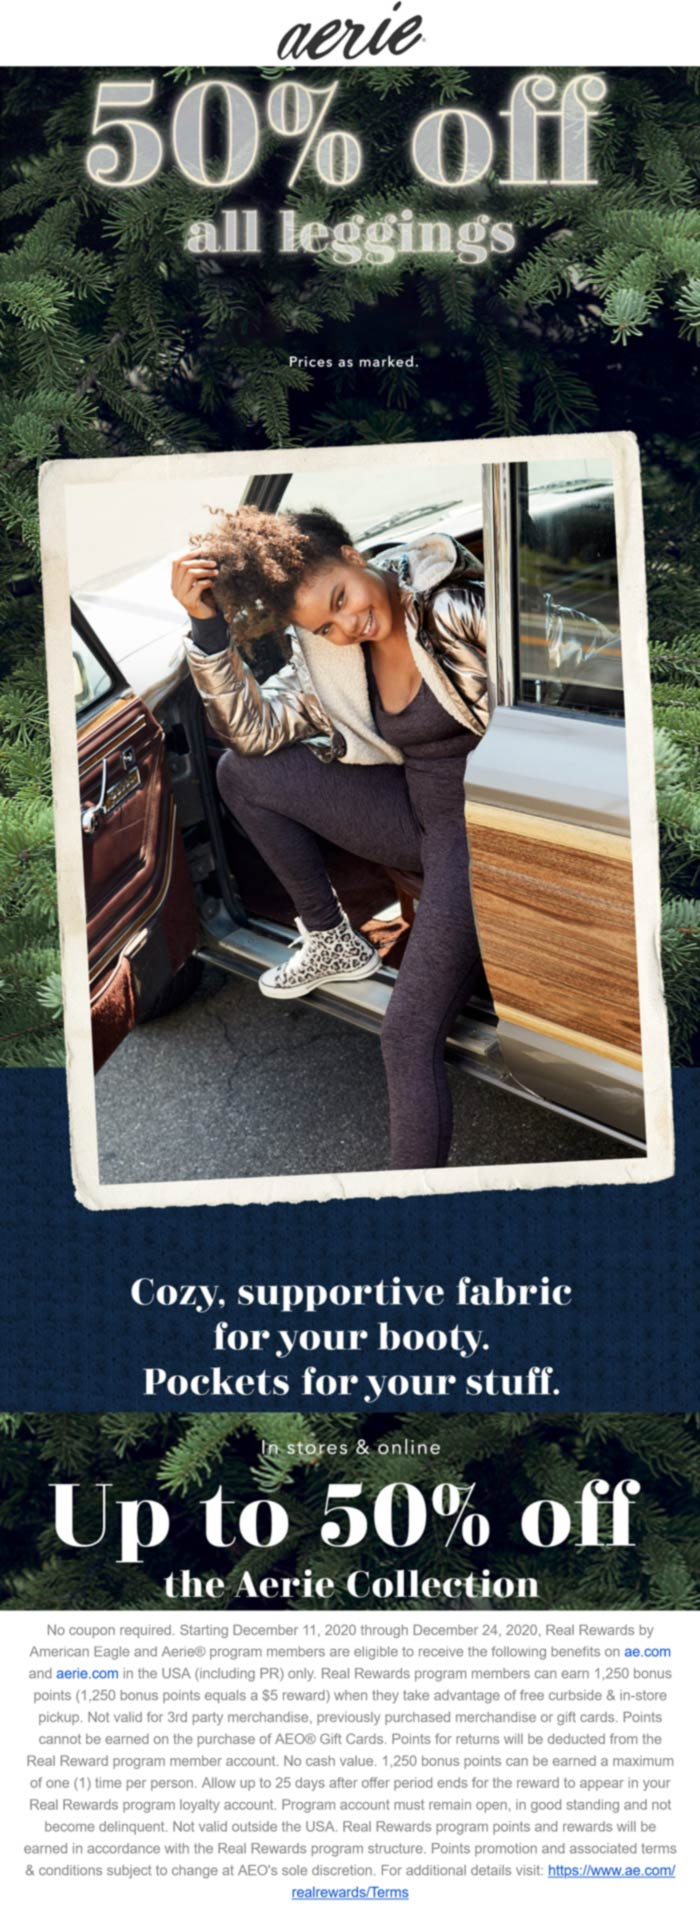 Aerie stores Coupon  50% off all leggings at Aerie #aerie